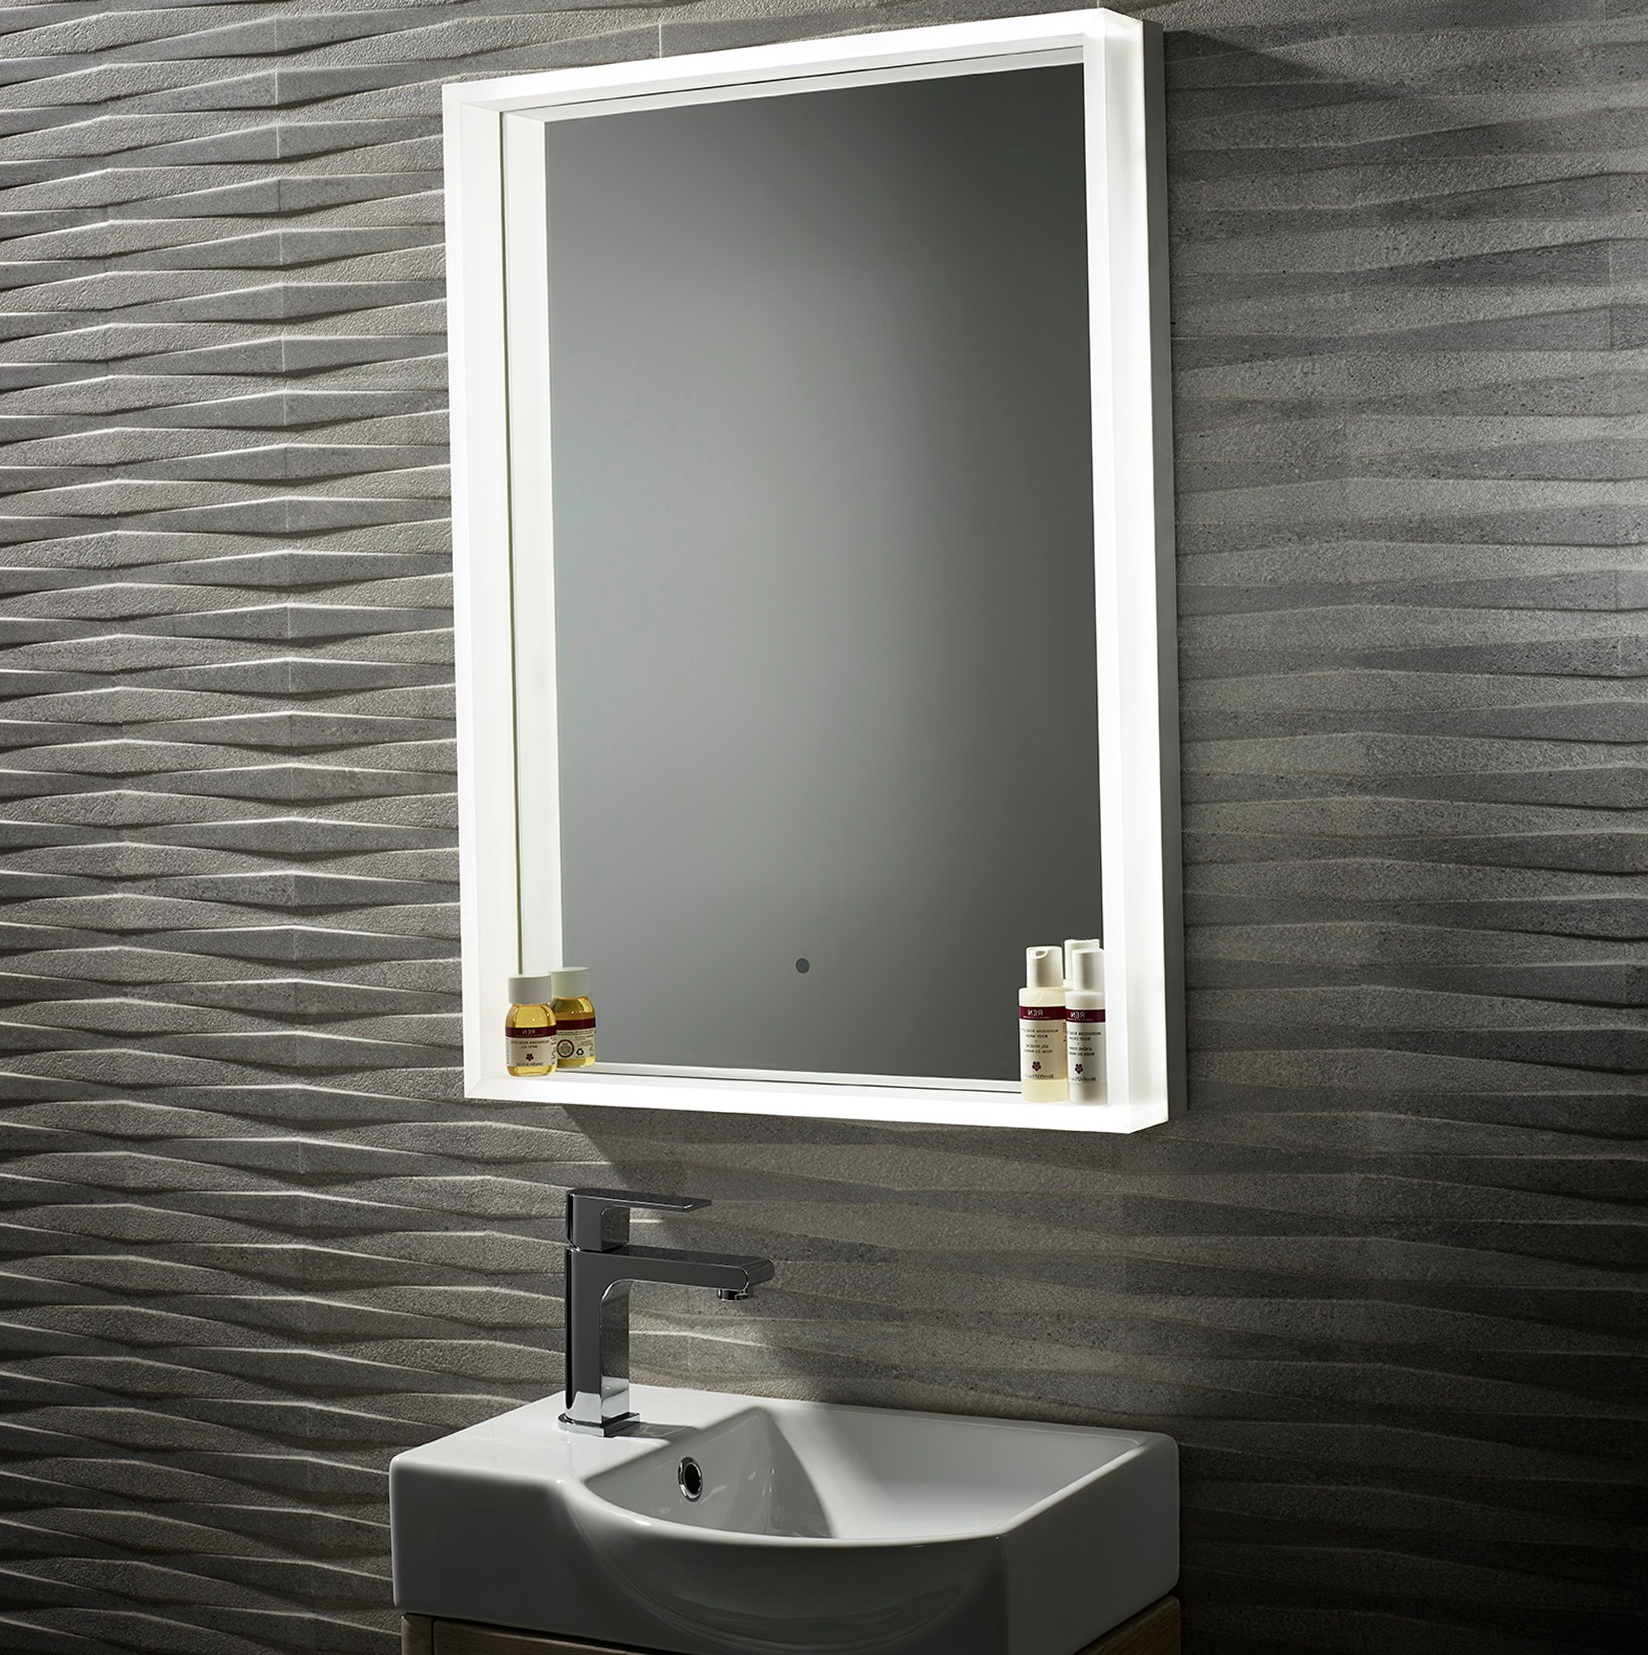 Cheap Illuminated Bathroom Mirrors